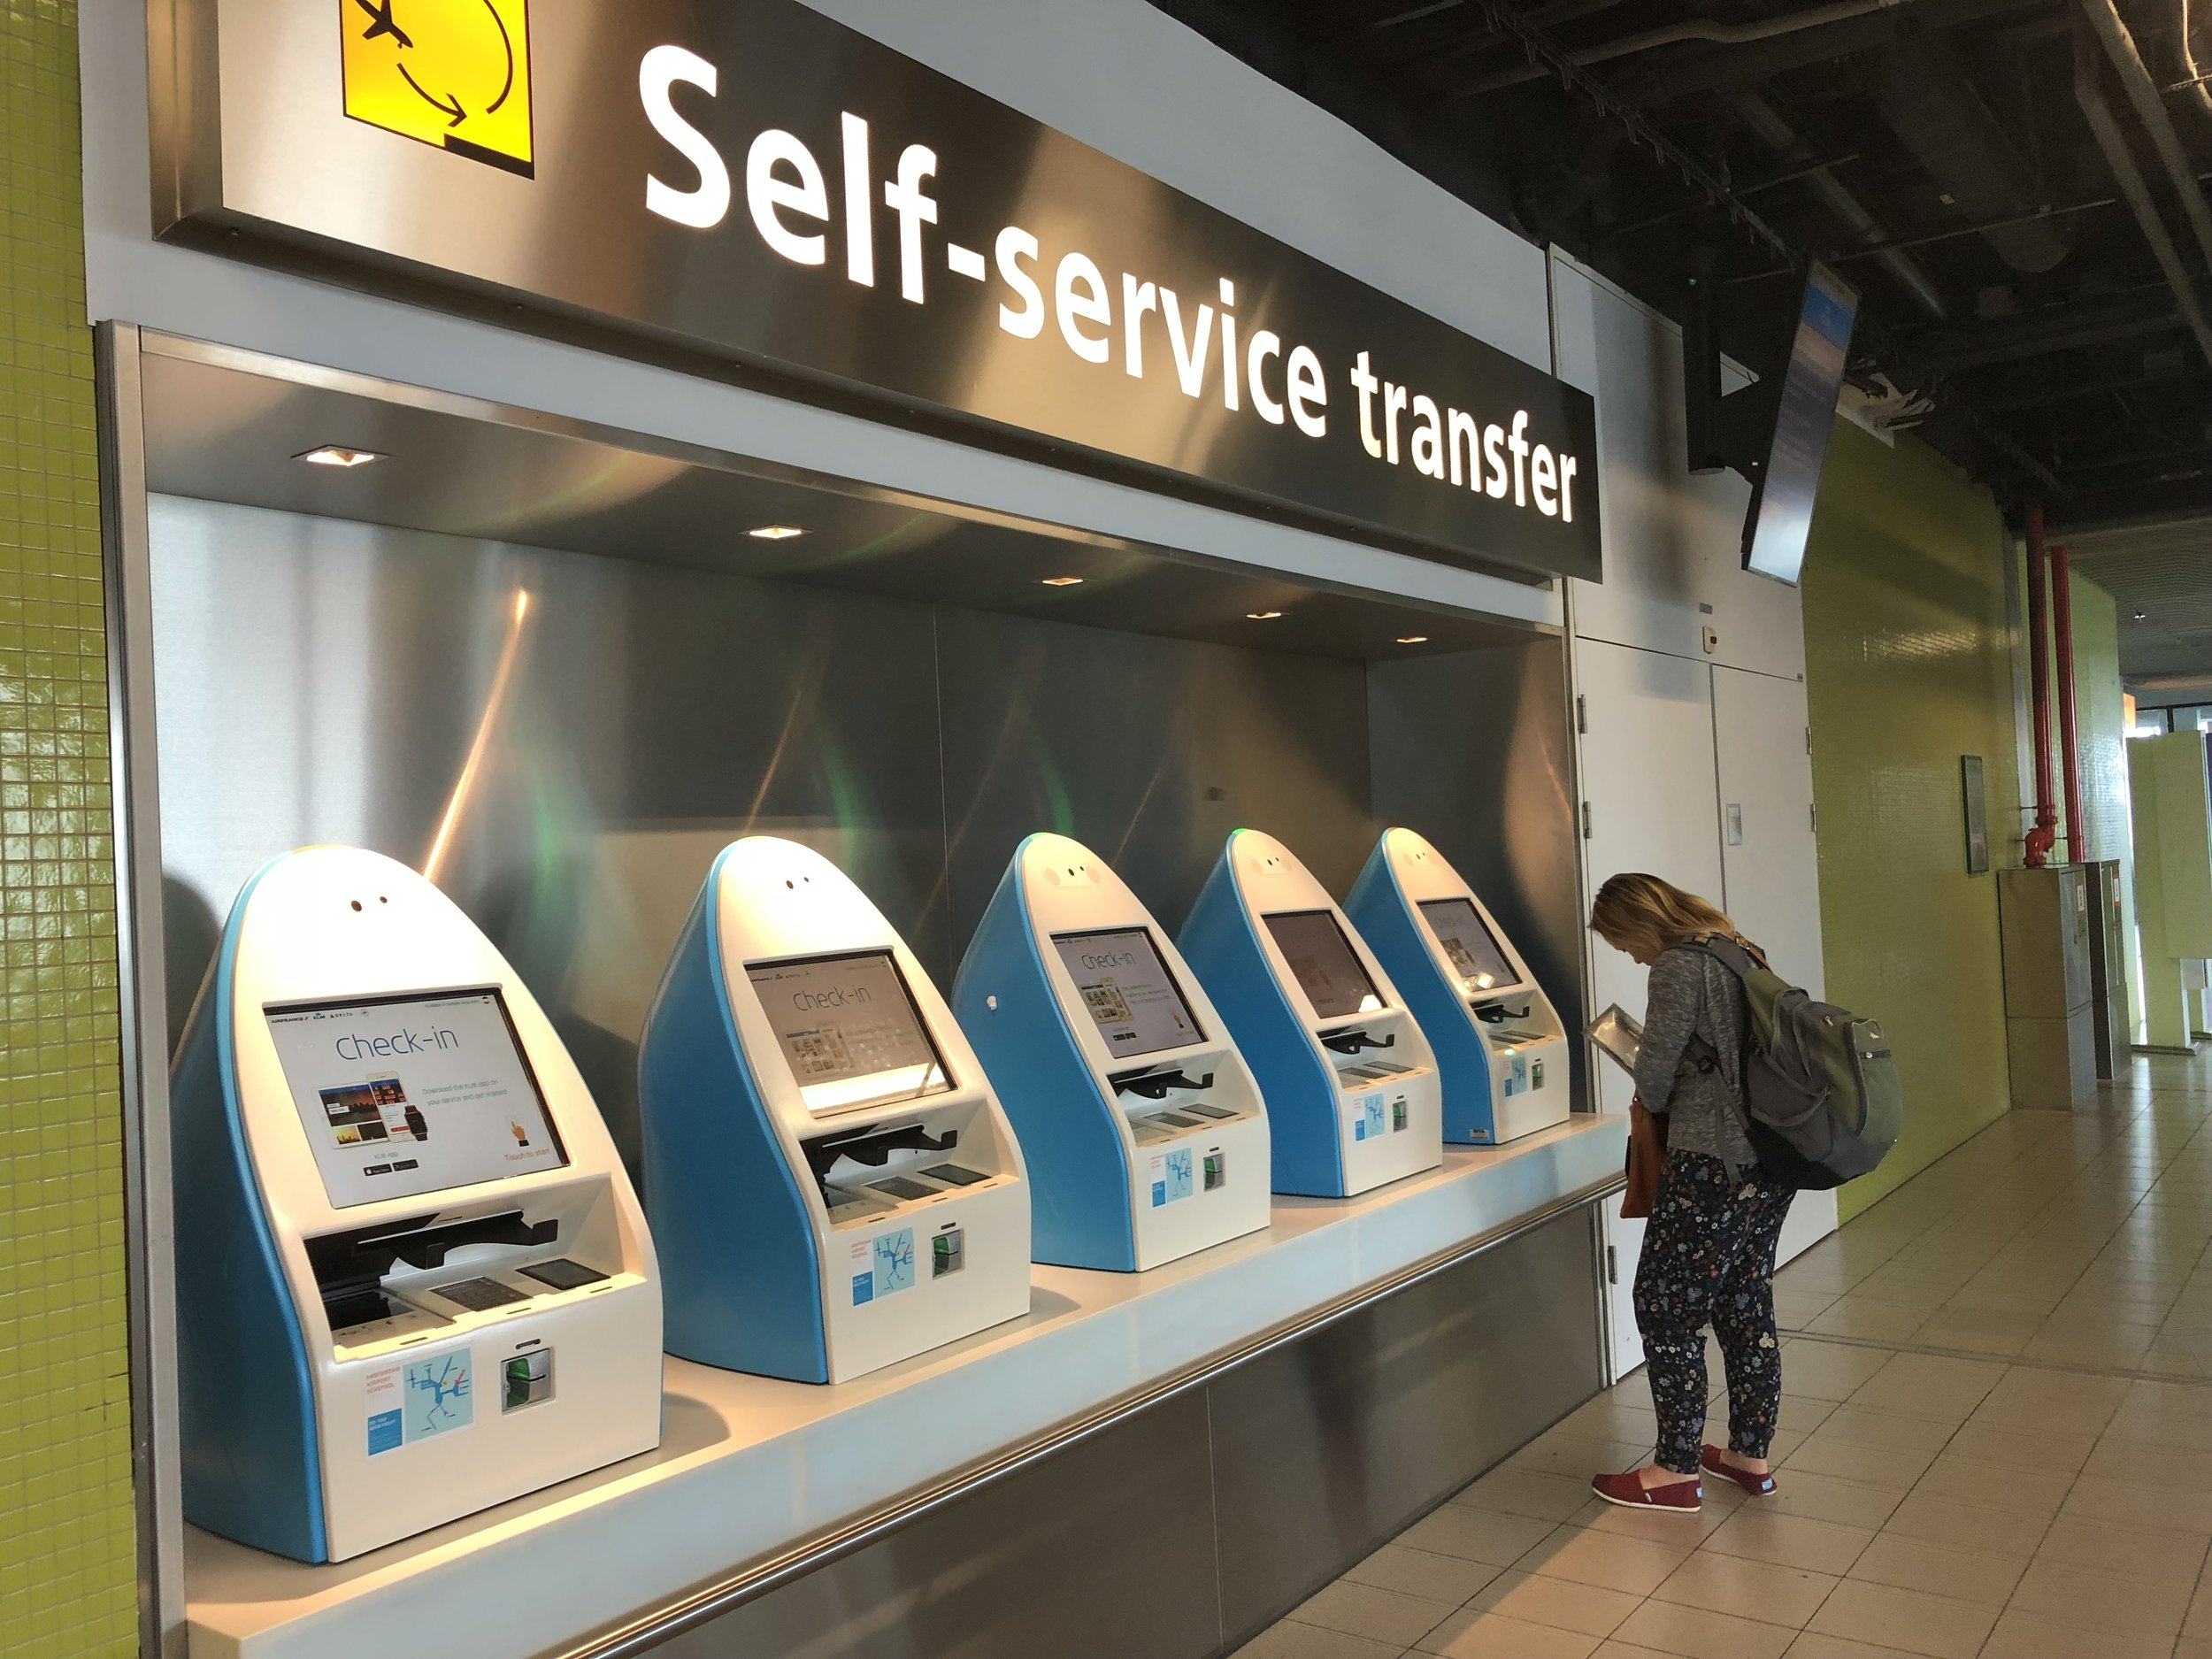 Self Service Transfer - Need to check in for your connecting flight... plenty of automated check-in machines along the way... There are also staffed areas for help if you need it...